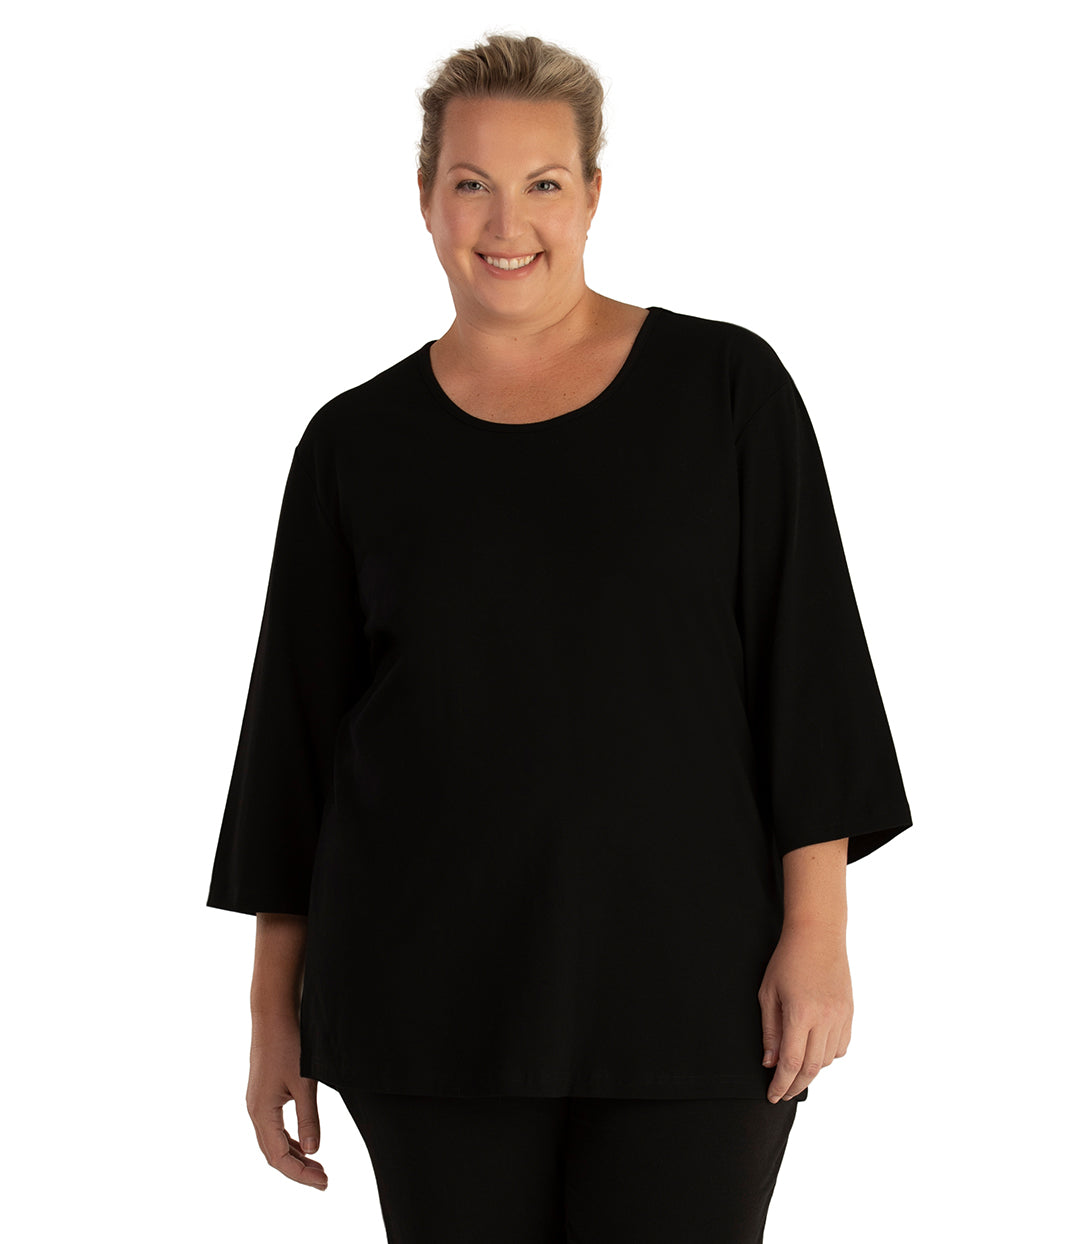 Stretch Naturals Scoop Neck 3/4 Sleeve Top Basic Colors-Tops 3/4 Sleeve-Hop Wo Trading Co Ltd-XL-Black-JunoActive